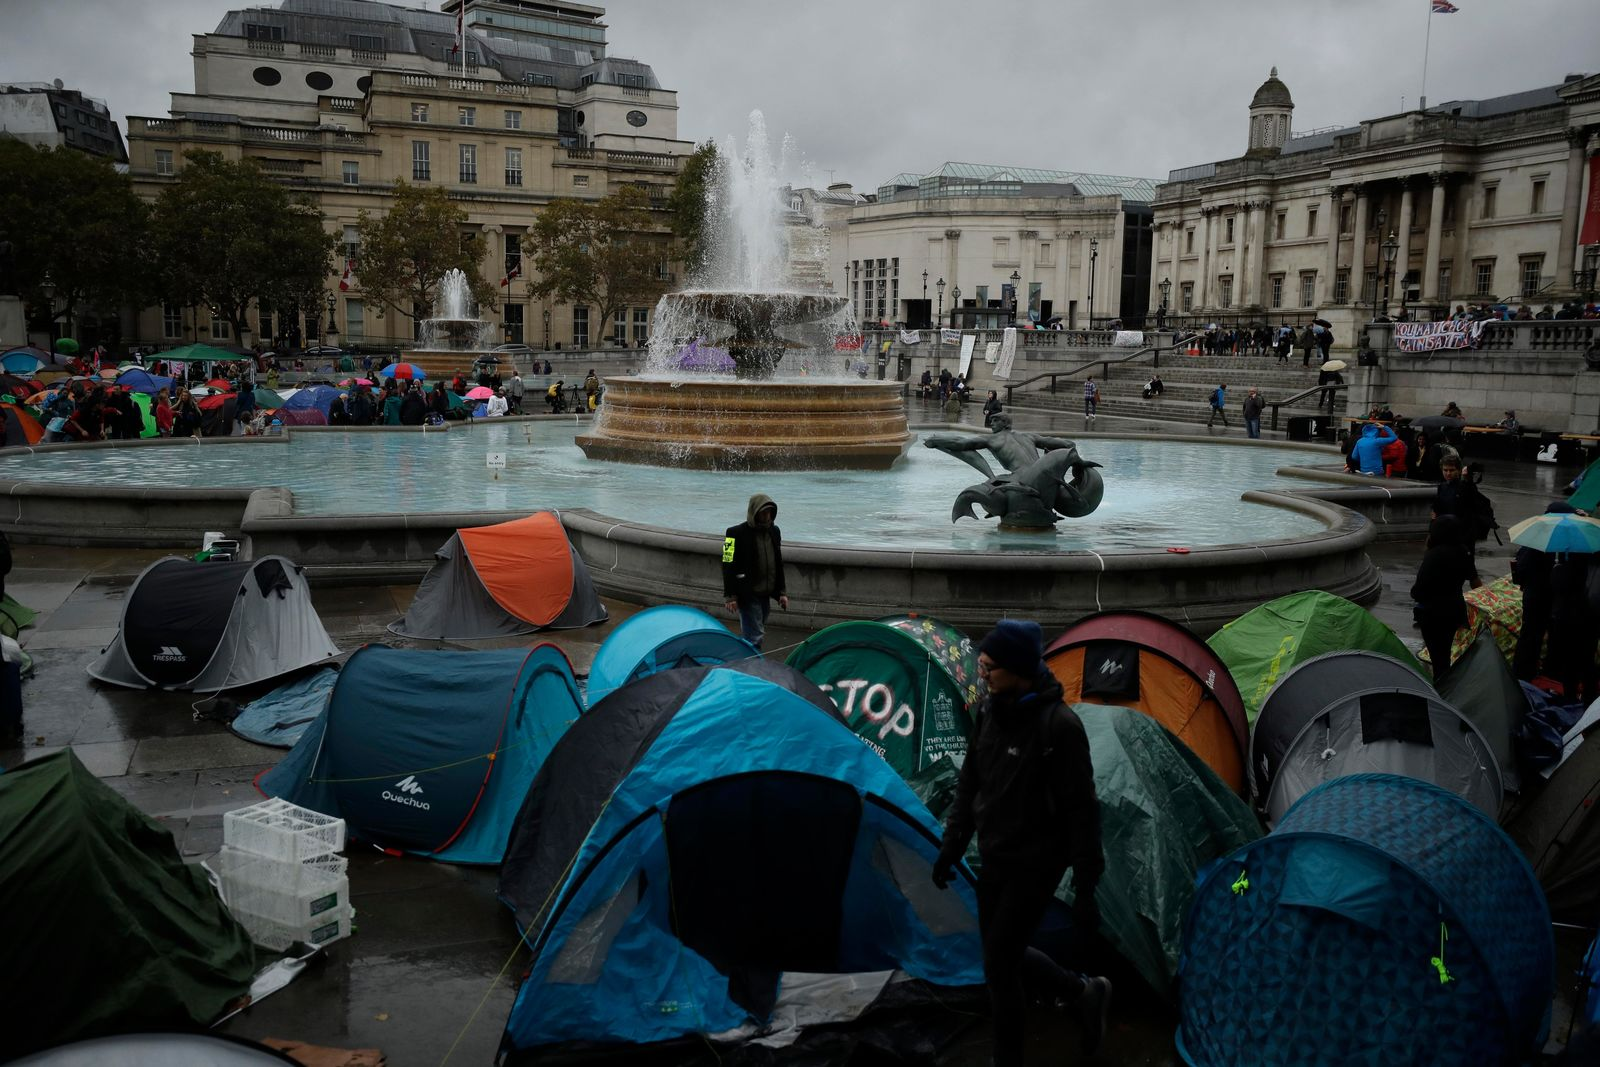 Extinction Rebellion climate change protester tents stand setup in Trafalgar Square, London, Friday, Oct. 11, 2019. Some hundreds of climate change activists are in London during a fifth day of protests by the Extinction Rebellion movement to demand more urgent actions to counter global warming. (AP Photo/Matt Dunham)